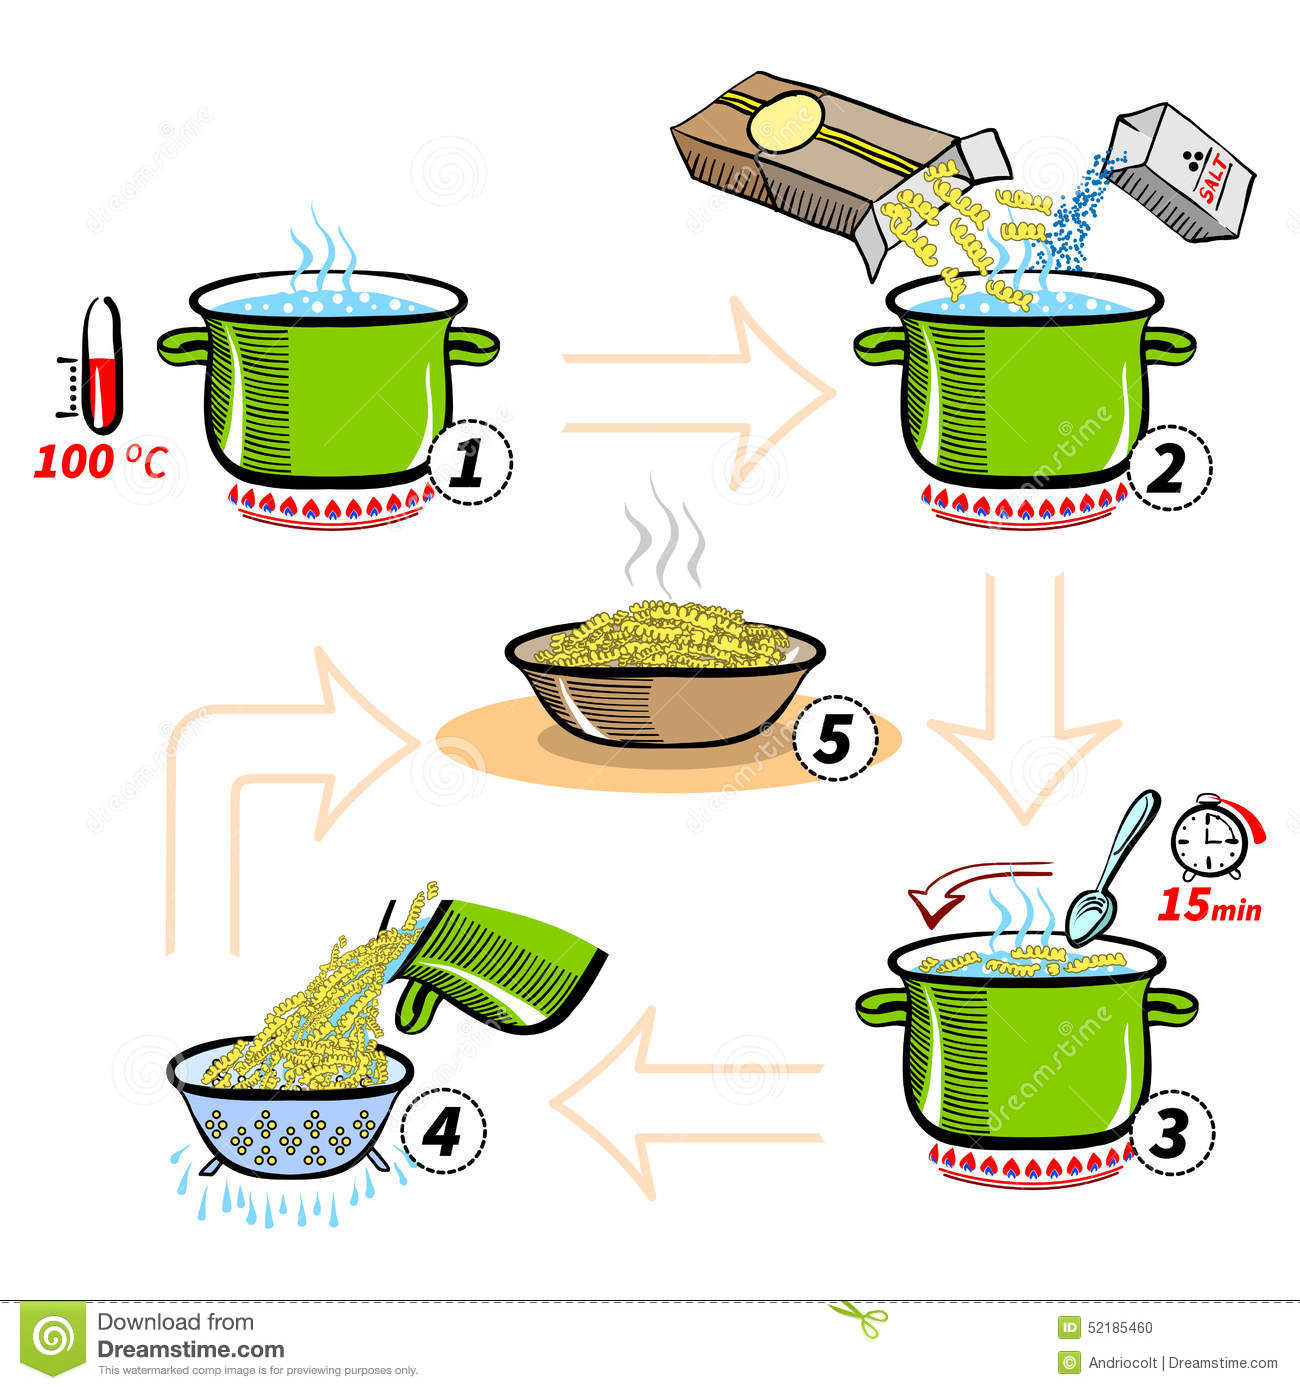 Step By Step Recipe Infographic For Cooking Pasta Stock